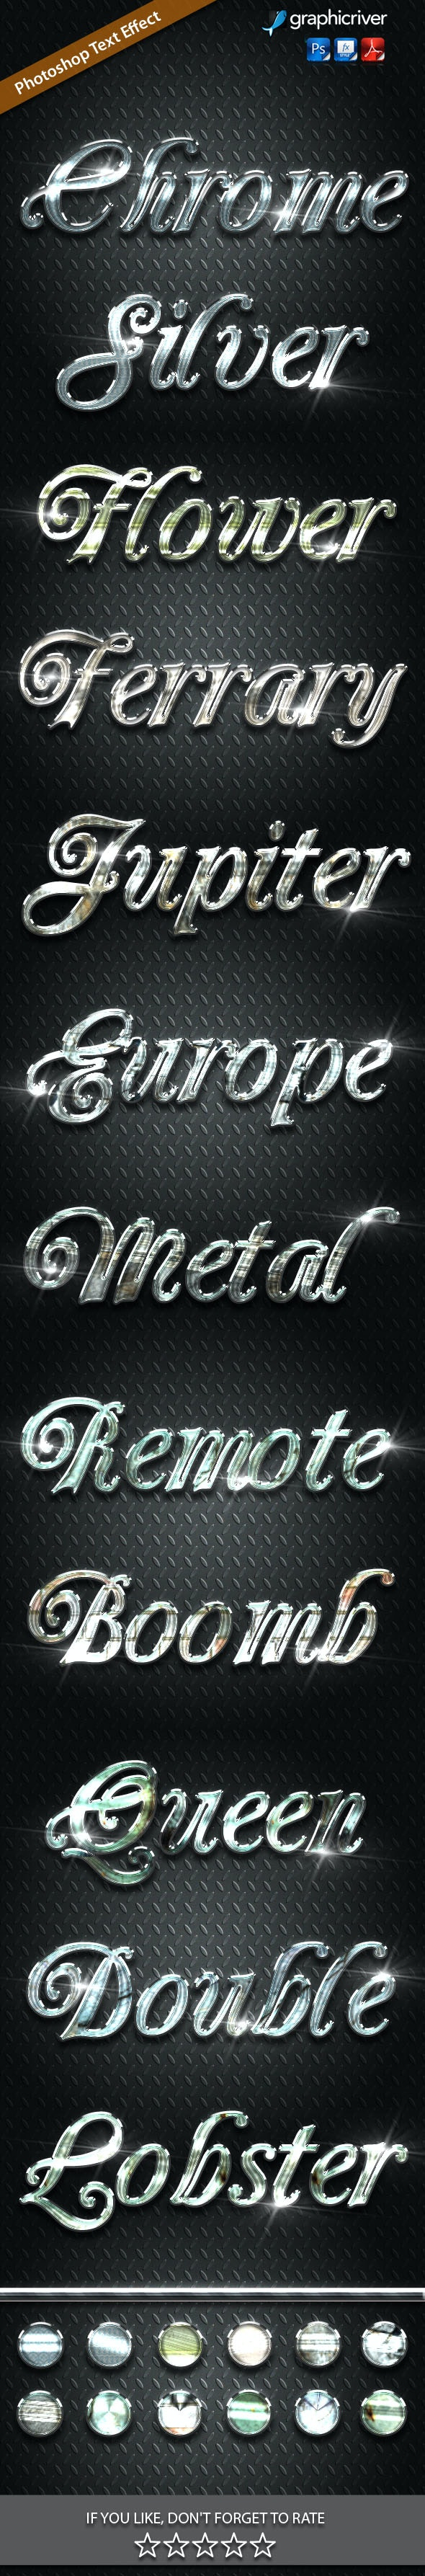 12 Silver Metal Vol 6 - Text Effects Styles